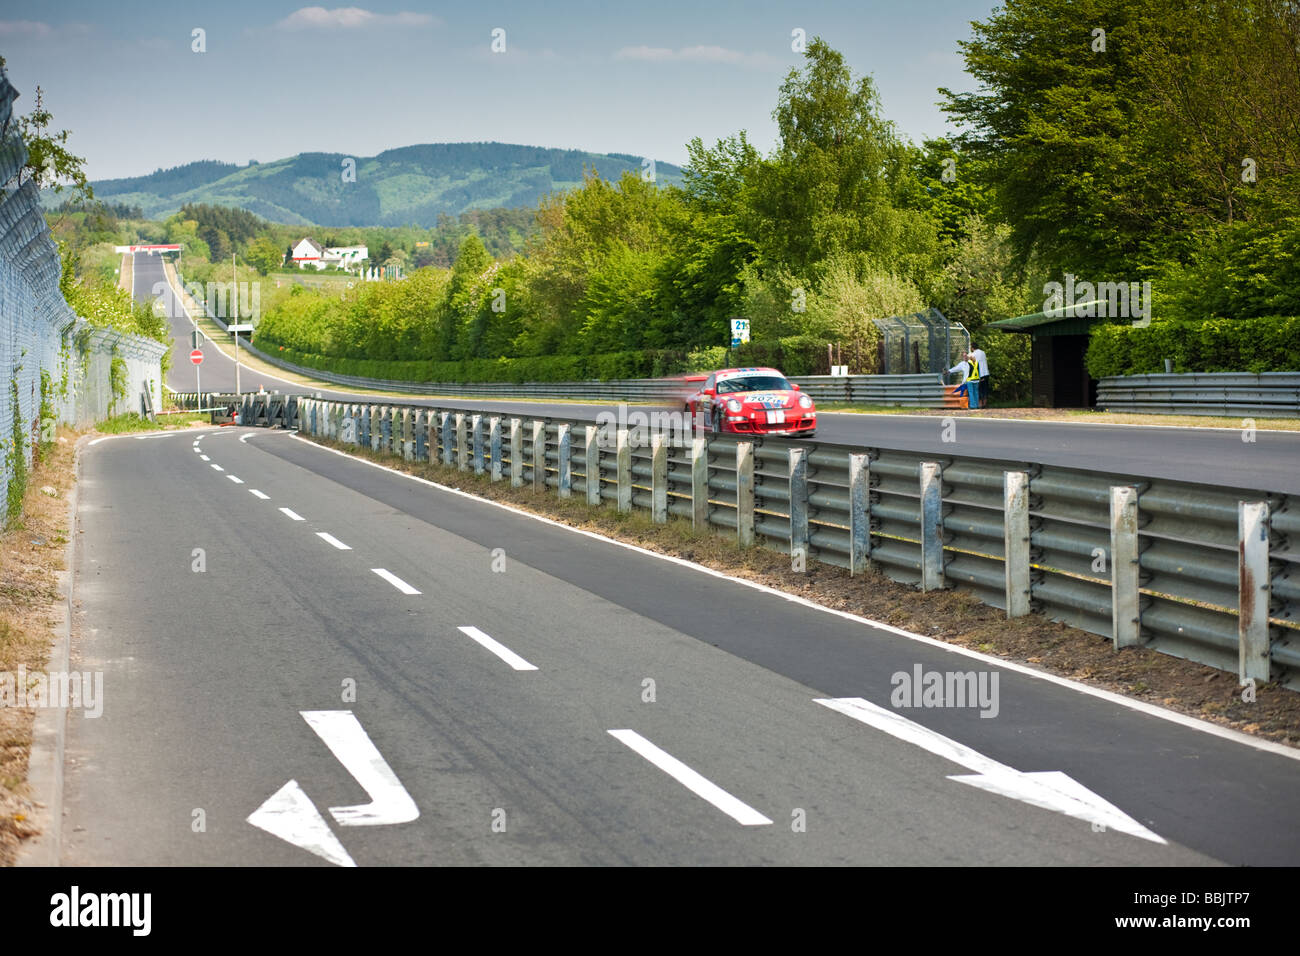 Motor Racing on the Nurburgring race track Germany Europe Stock Photo